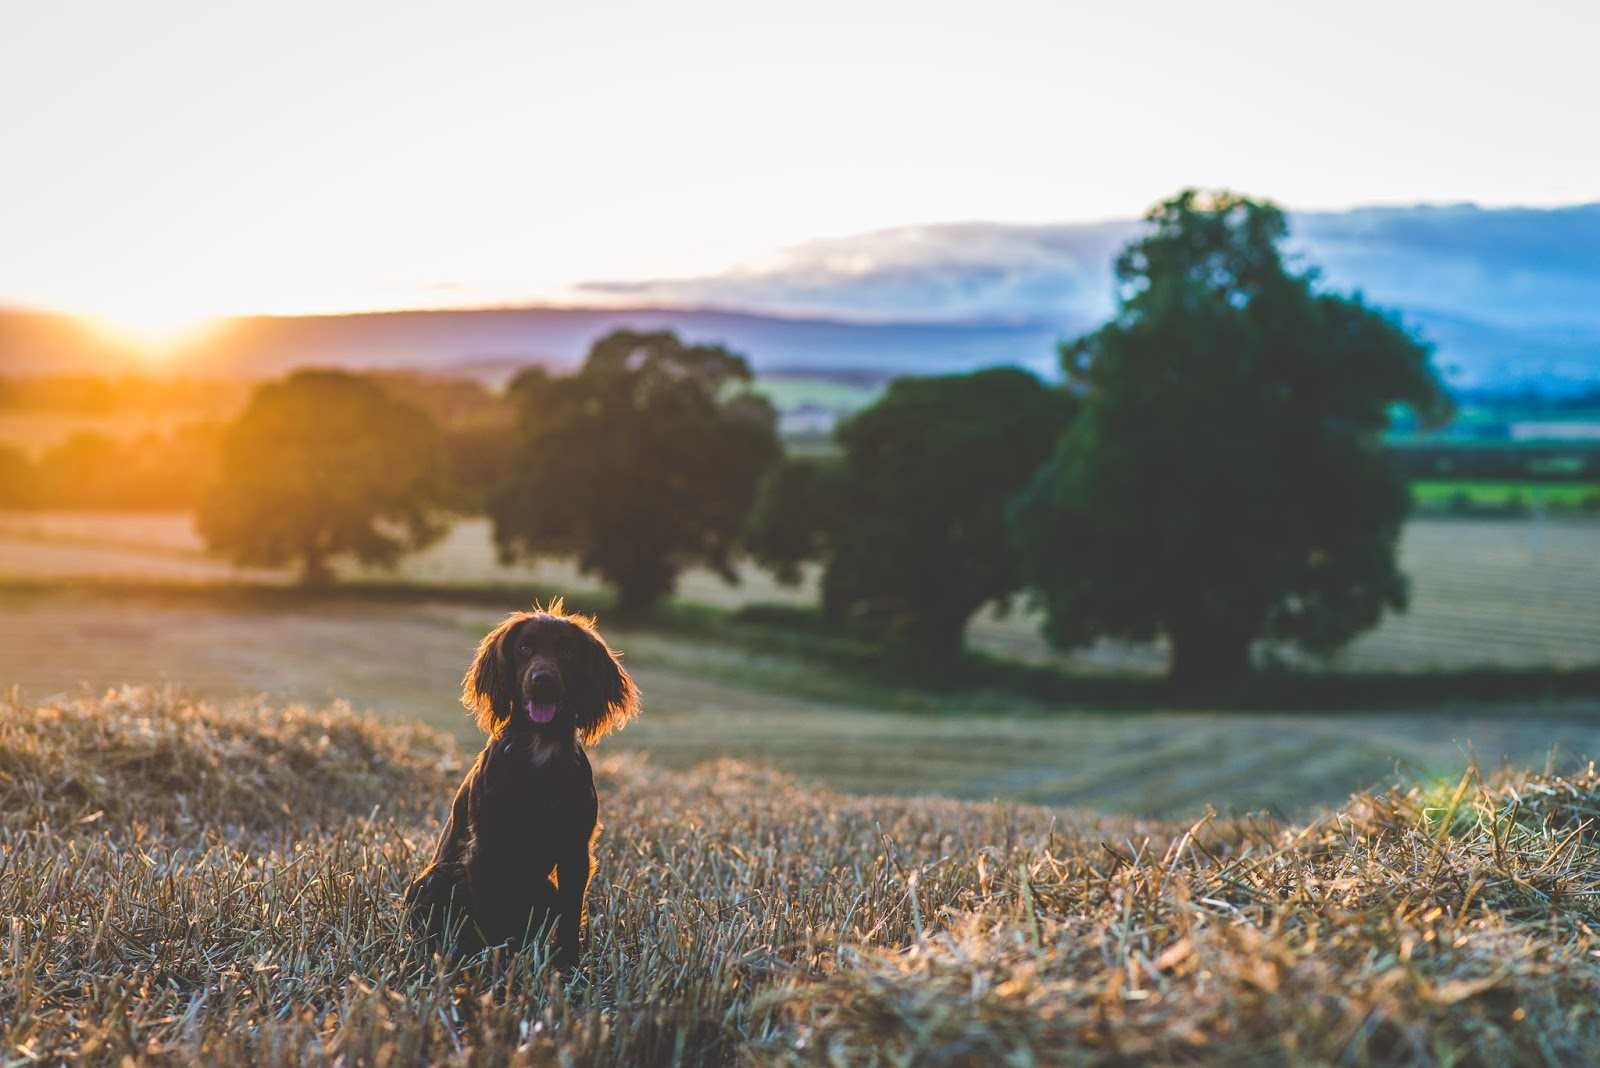 tilly liquidgrainpets liquidgrain liquid grain cocker spaniel sunset gundog